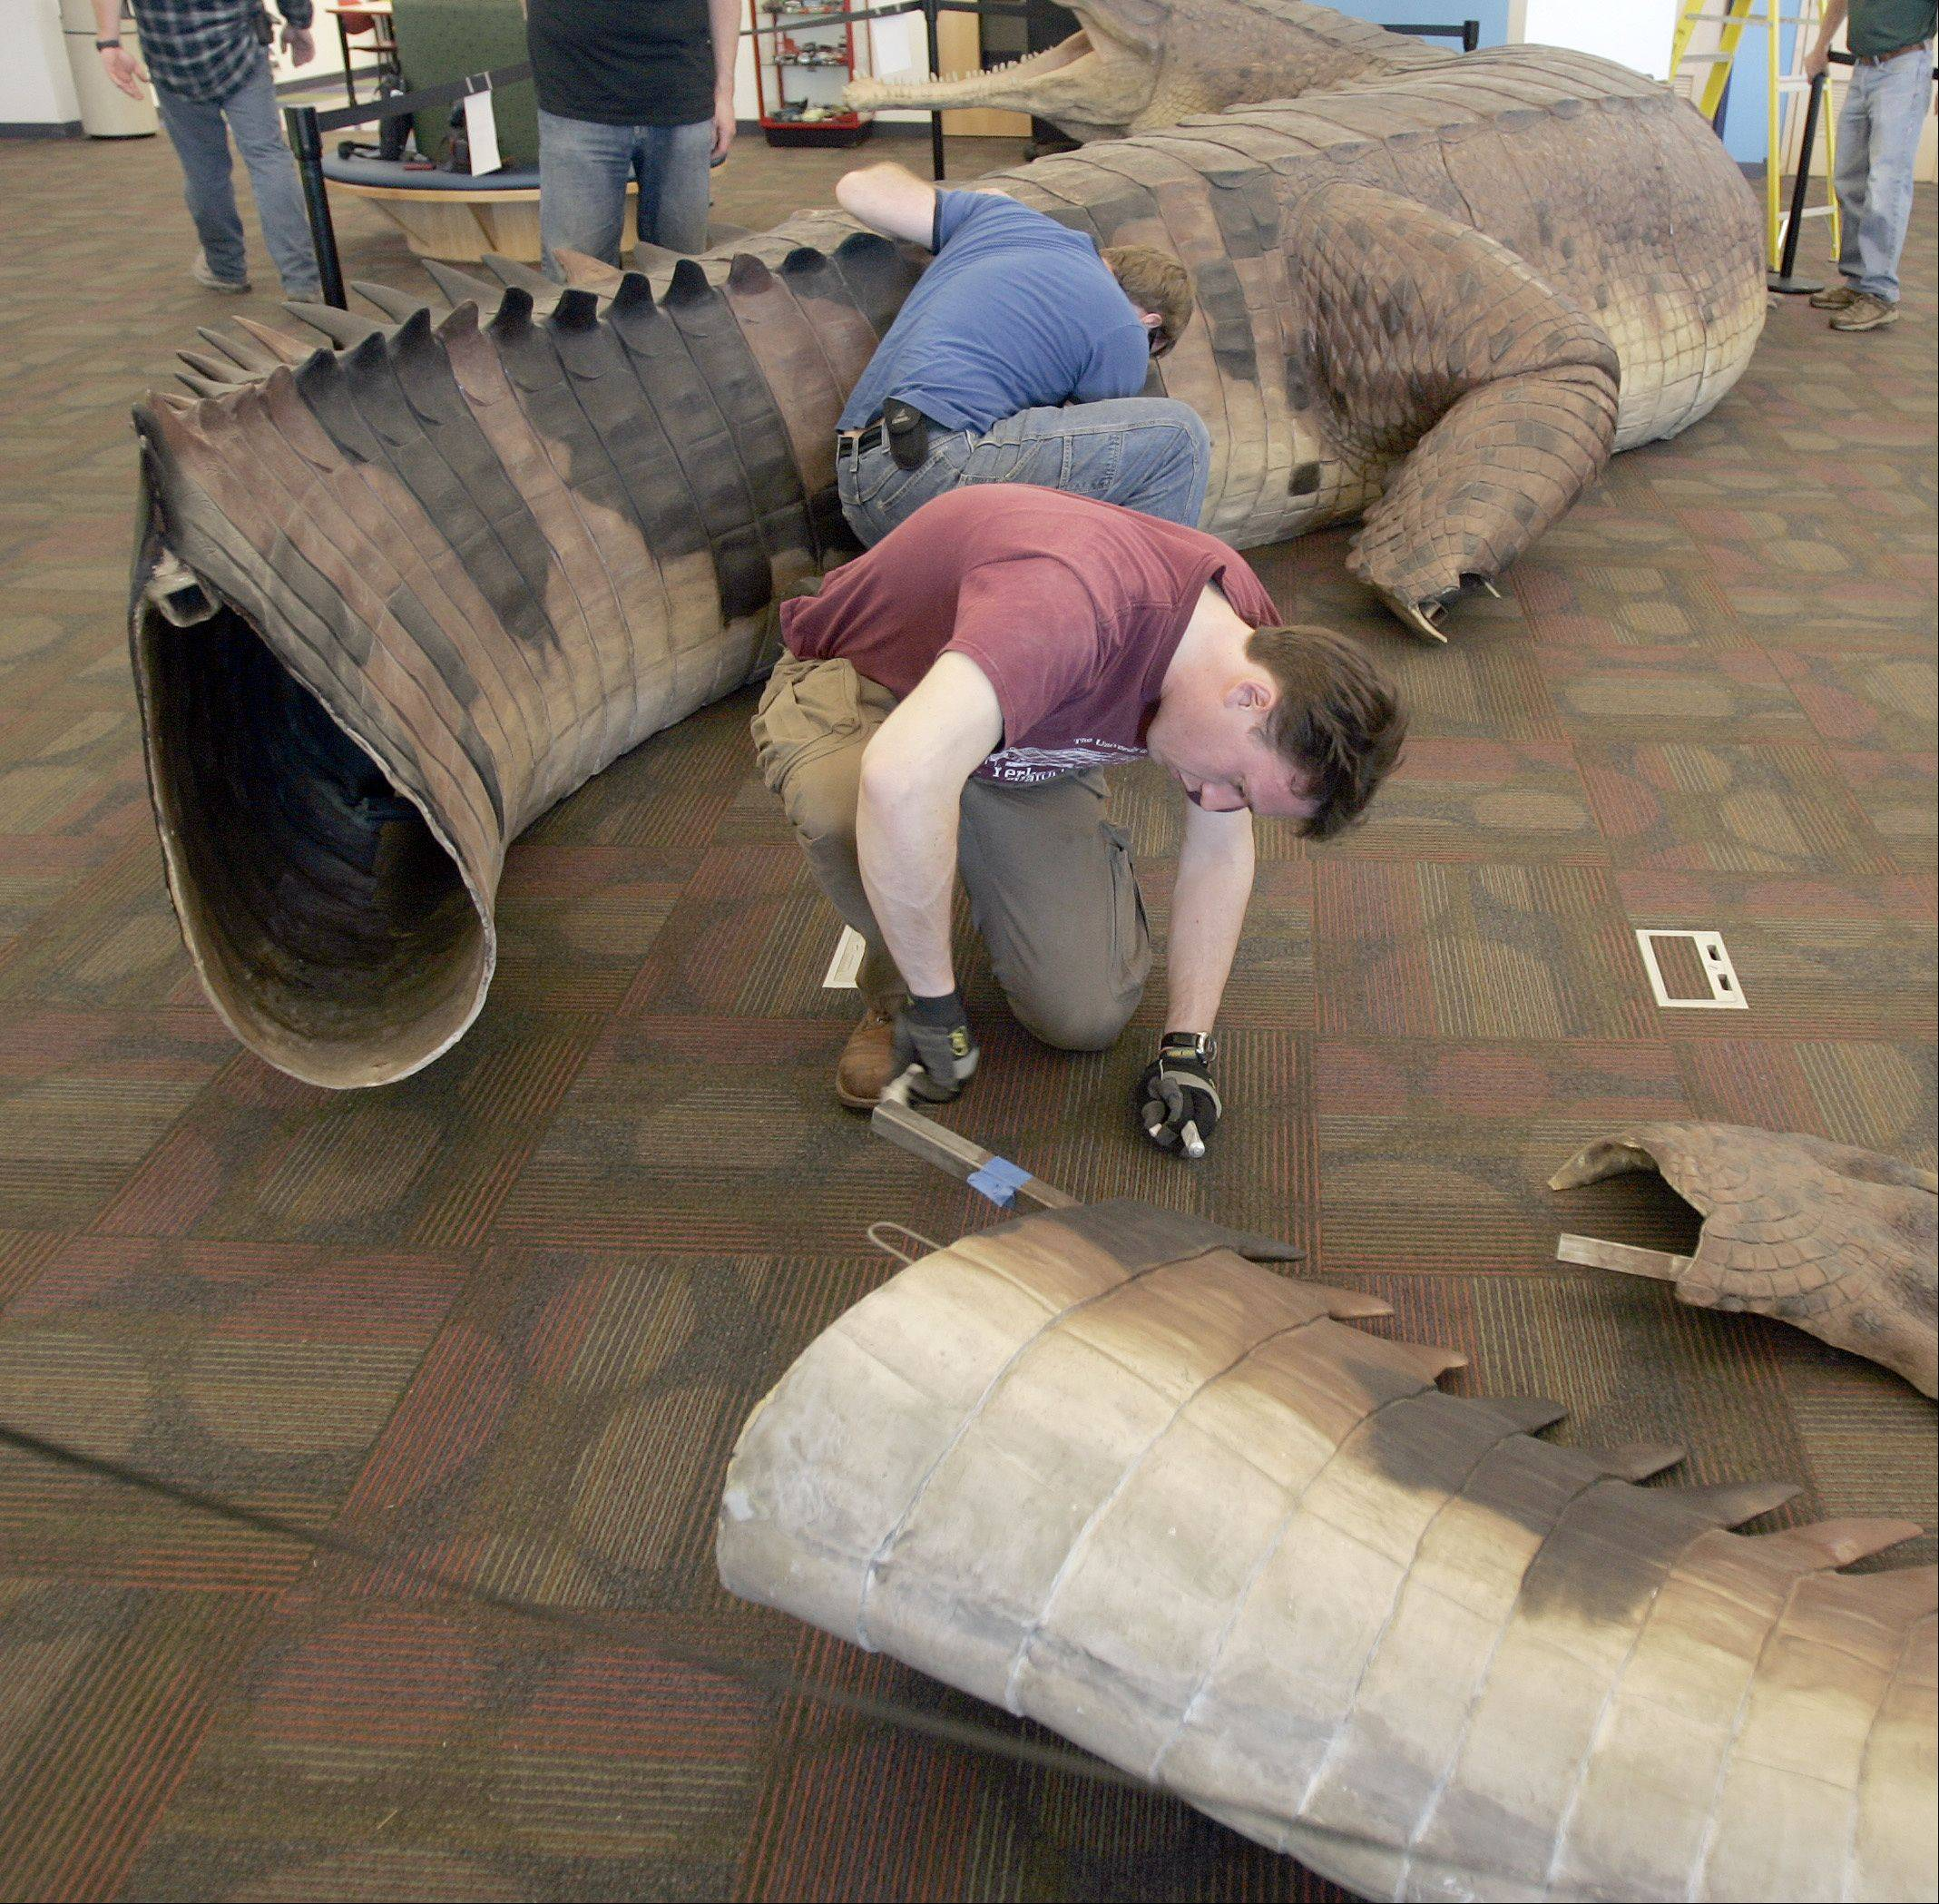 Joe Cottral of Project Exploration checks one of the fasteners Tuesday during the installation of the SuperCroc exhibit at the Gail Borden Public Library in Elgin. The exhibit, which has been all over the world, is being shown for the first time at a library with this summer's stop. The exhibit took two days to assemble. The prehistoric creature lived between 50 and 60 years. Its skull was upward of 6 feet long.